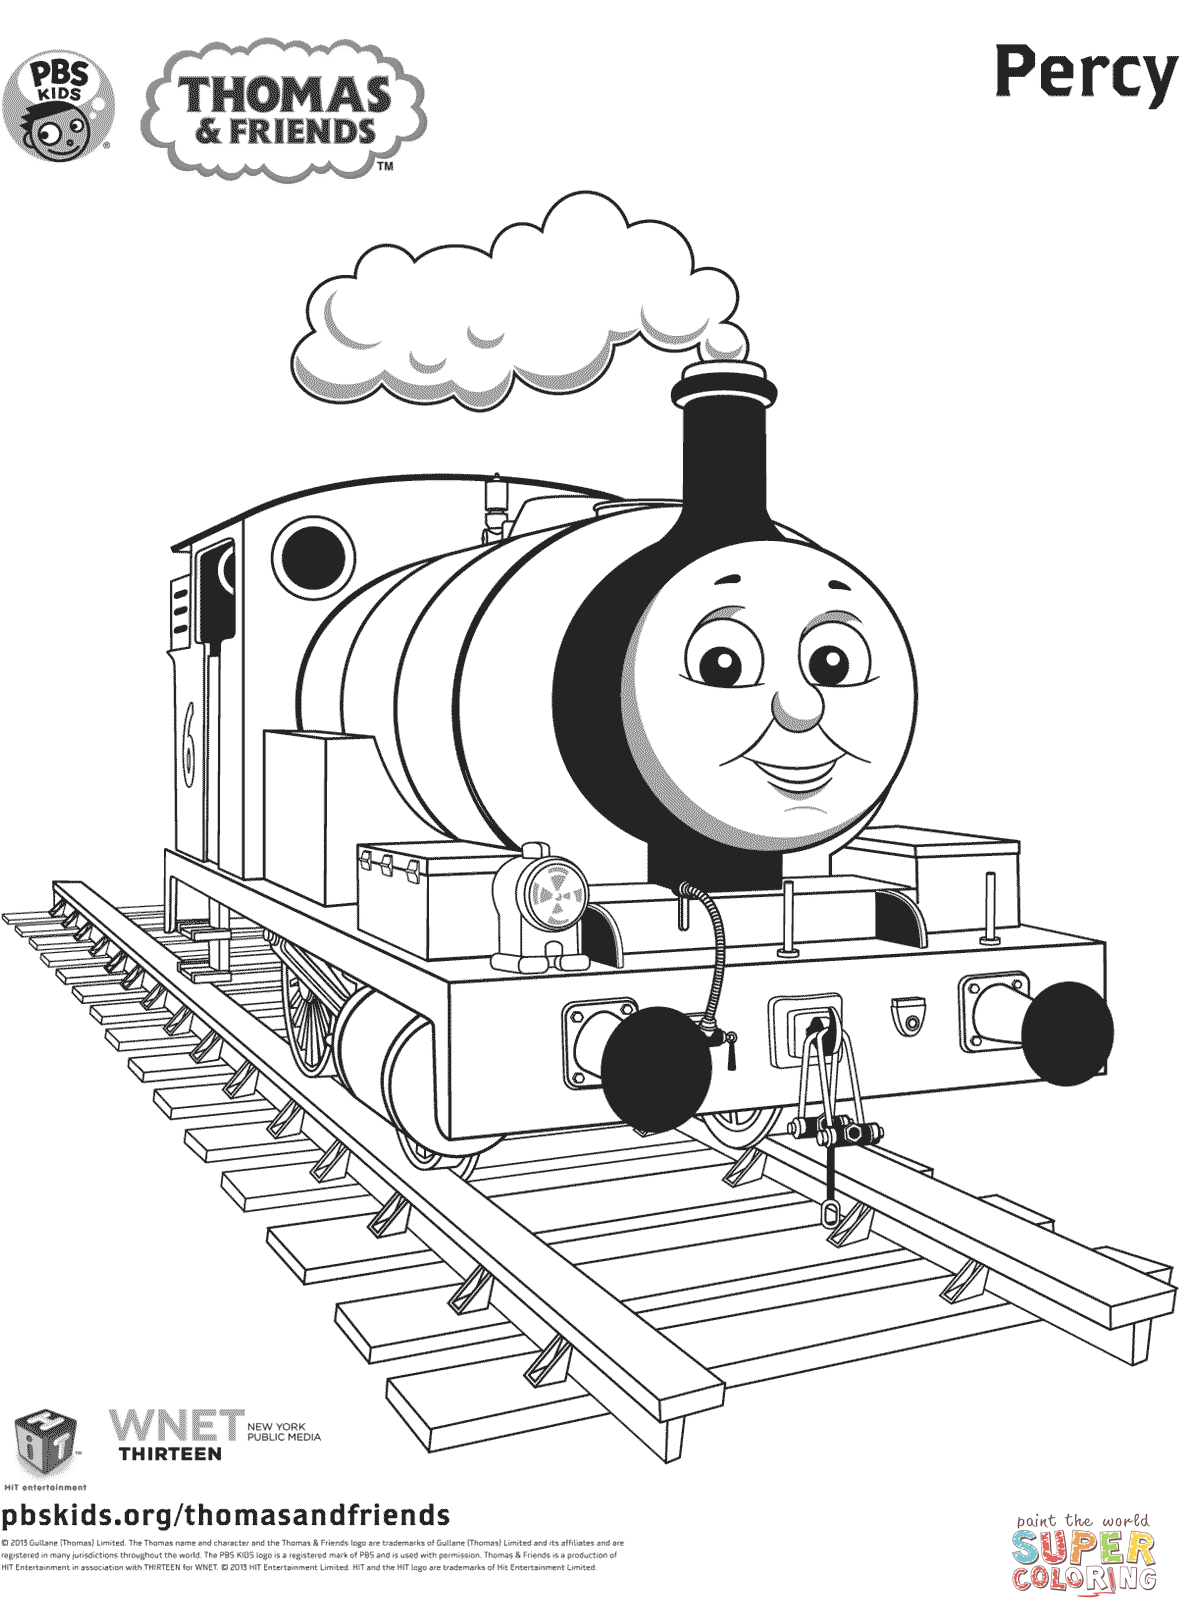 emily tank engine coloring pages - photo#8